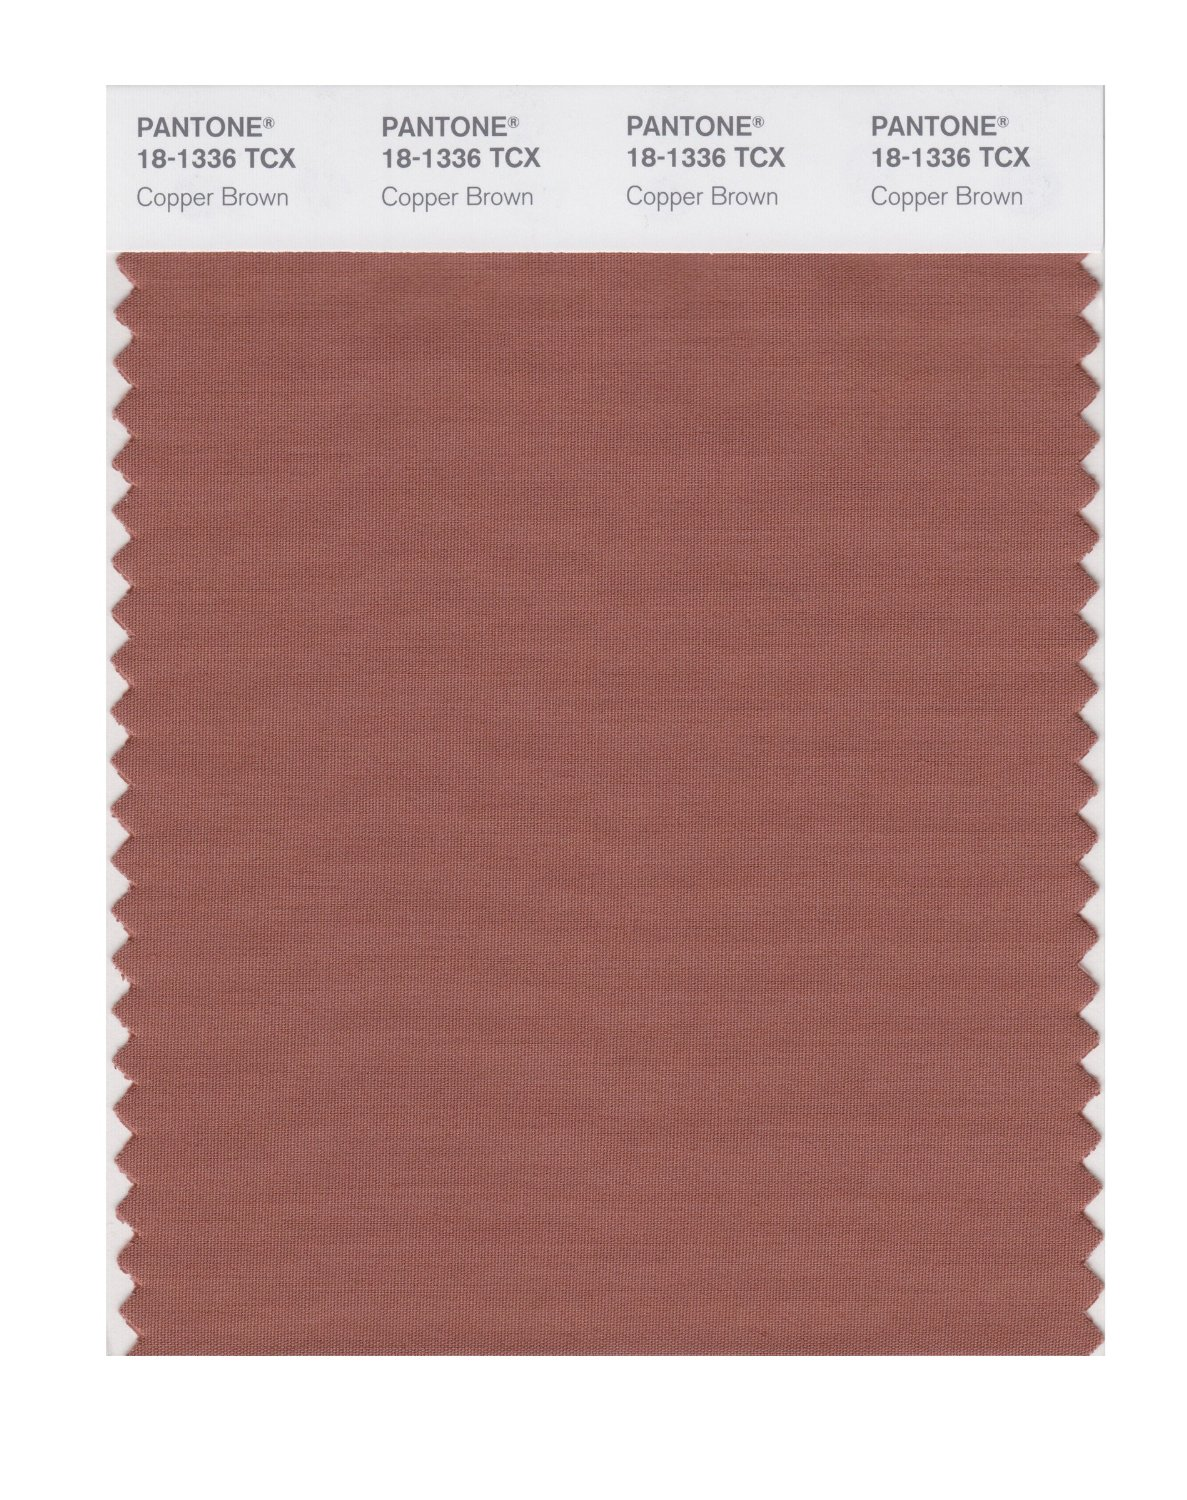 Pantone Smart Swatch 18-1336 Copper Brown